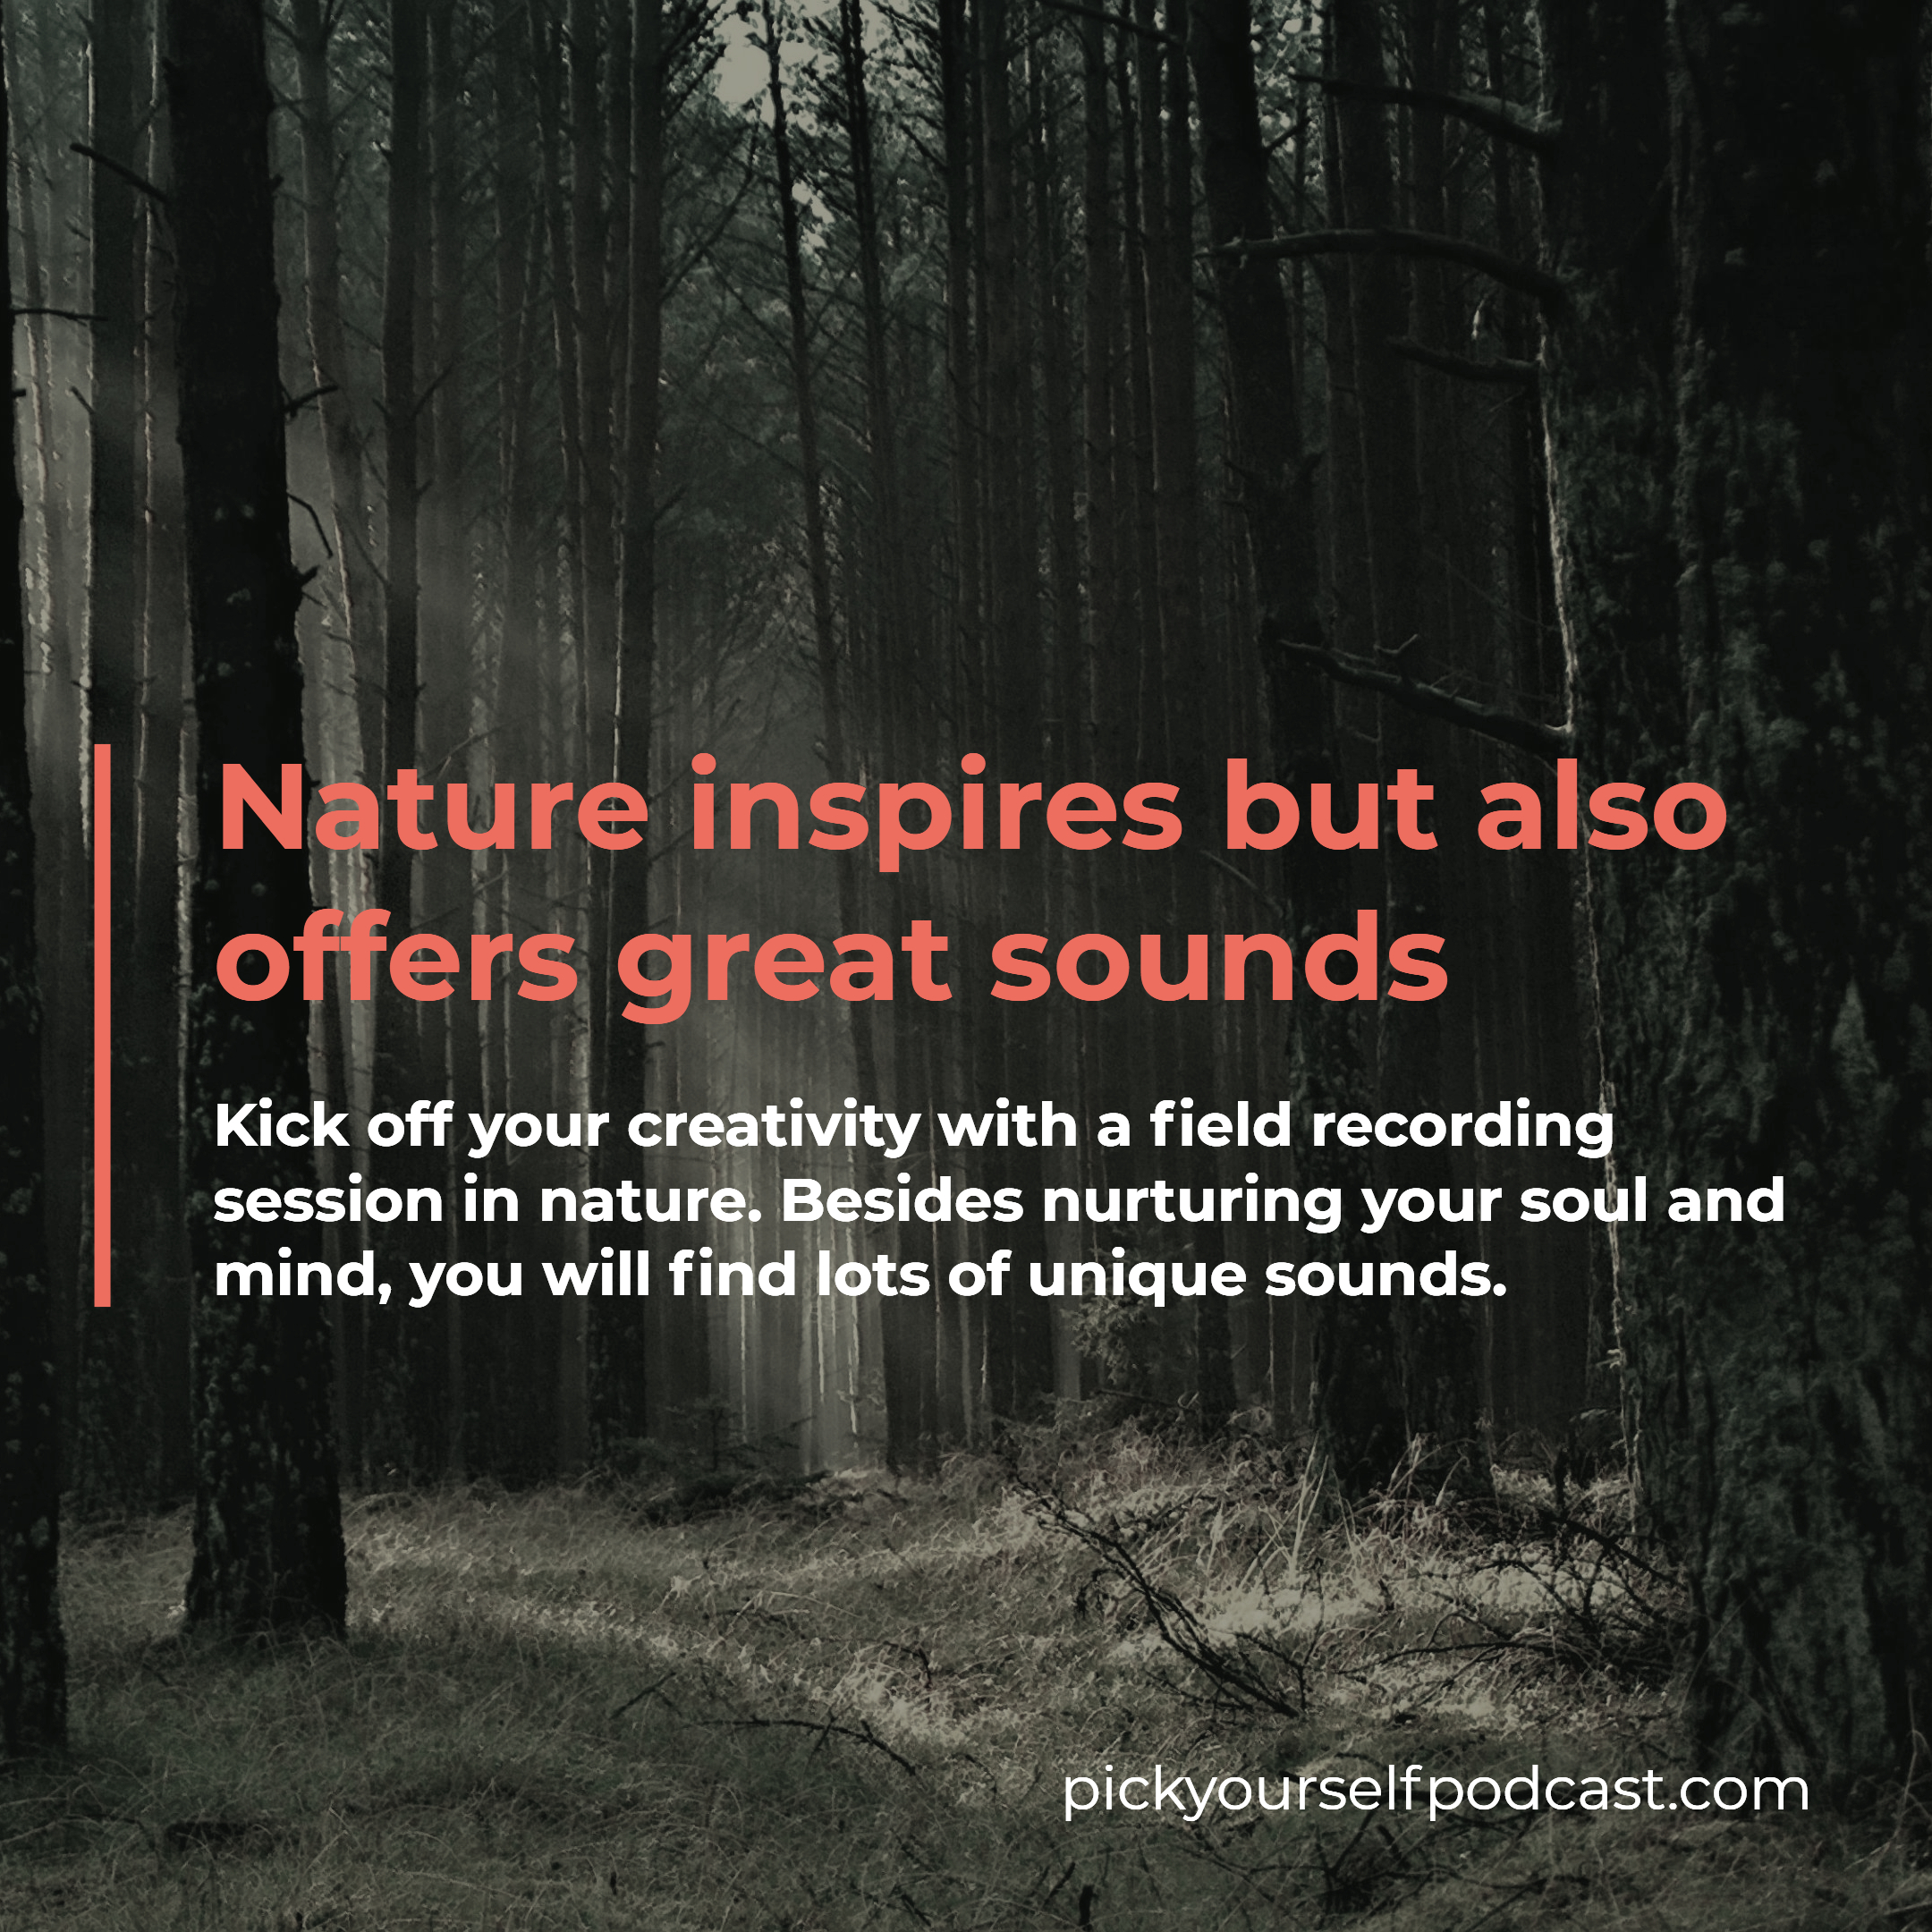 Generating song ideas visual 02. It Says Nature inspires but also offers great sounds!